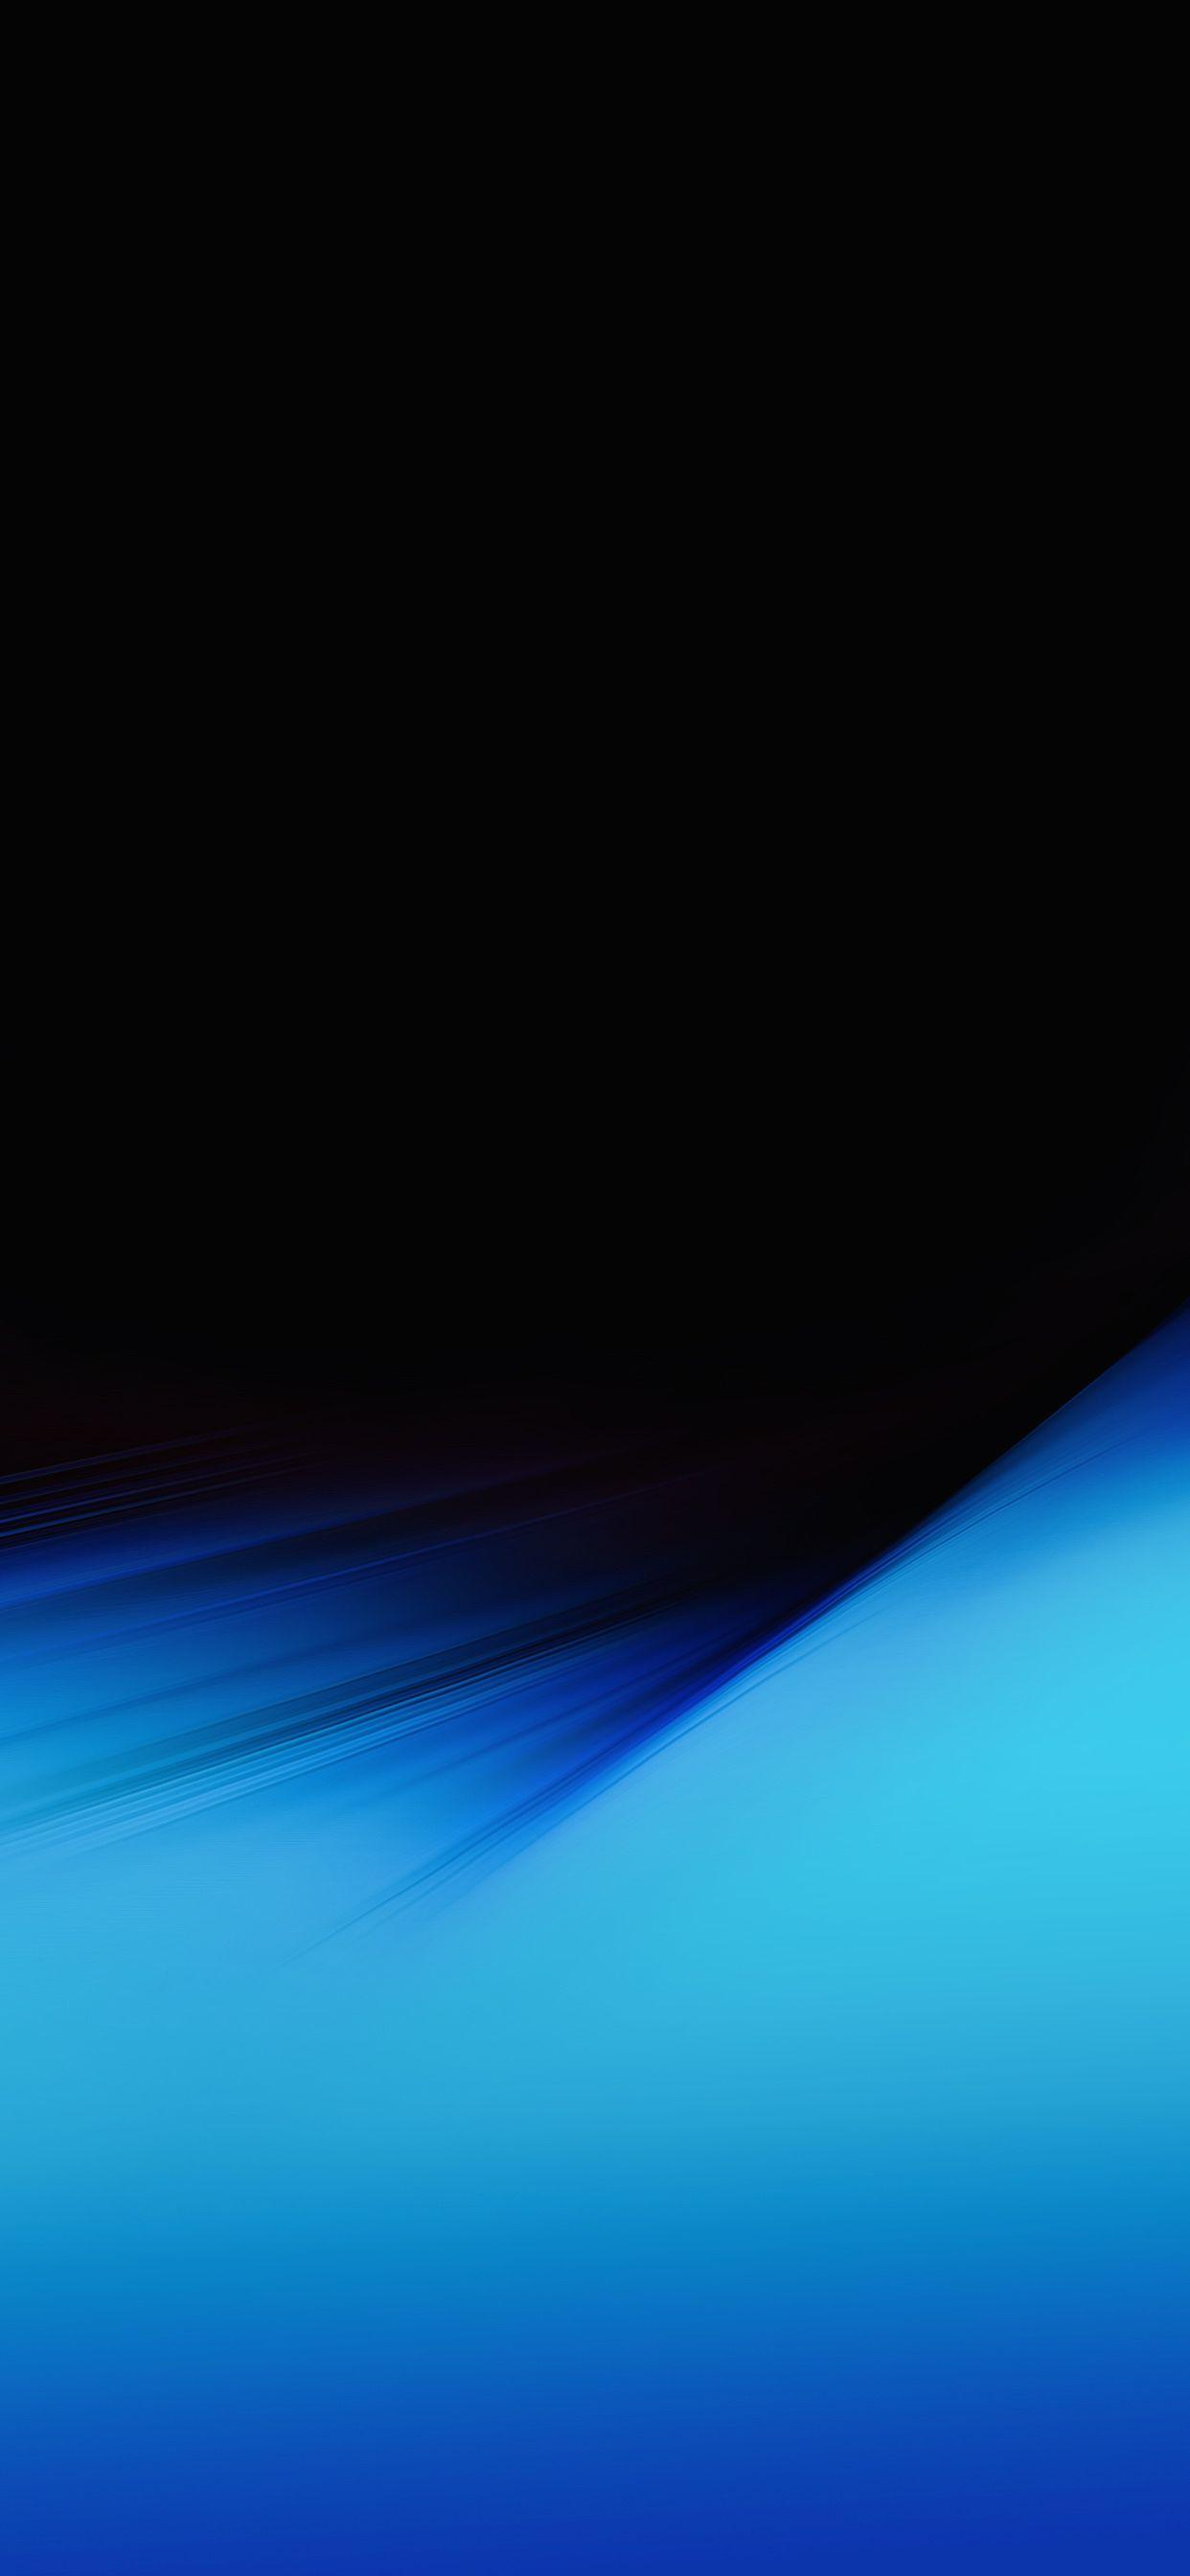 Black And Blue 4k Phone Wallpapers - Wallpaper Cave